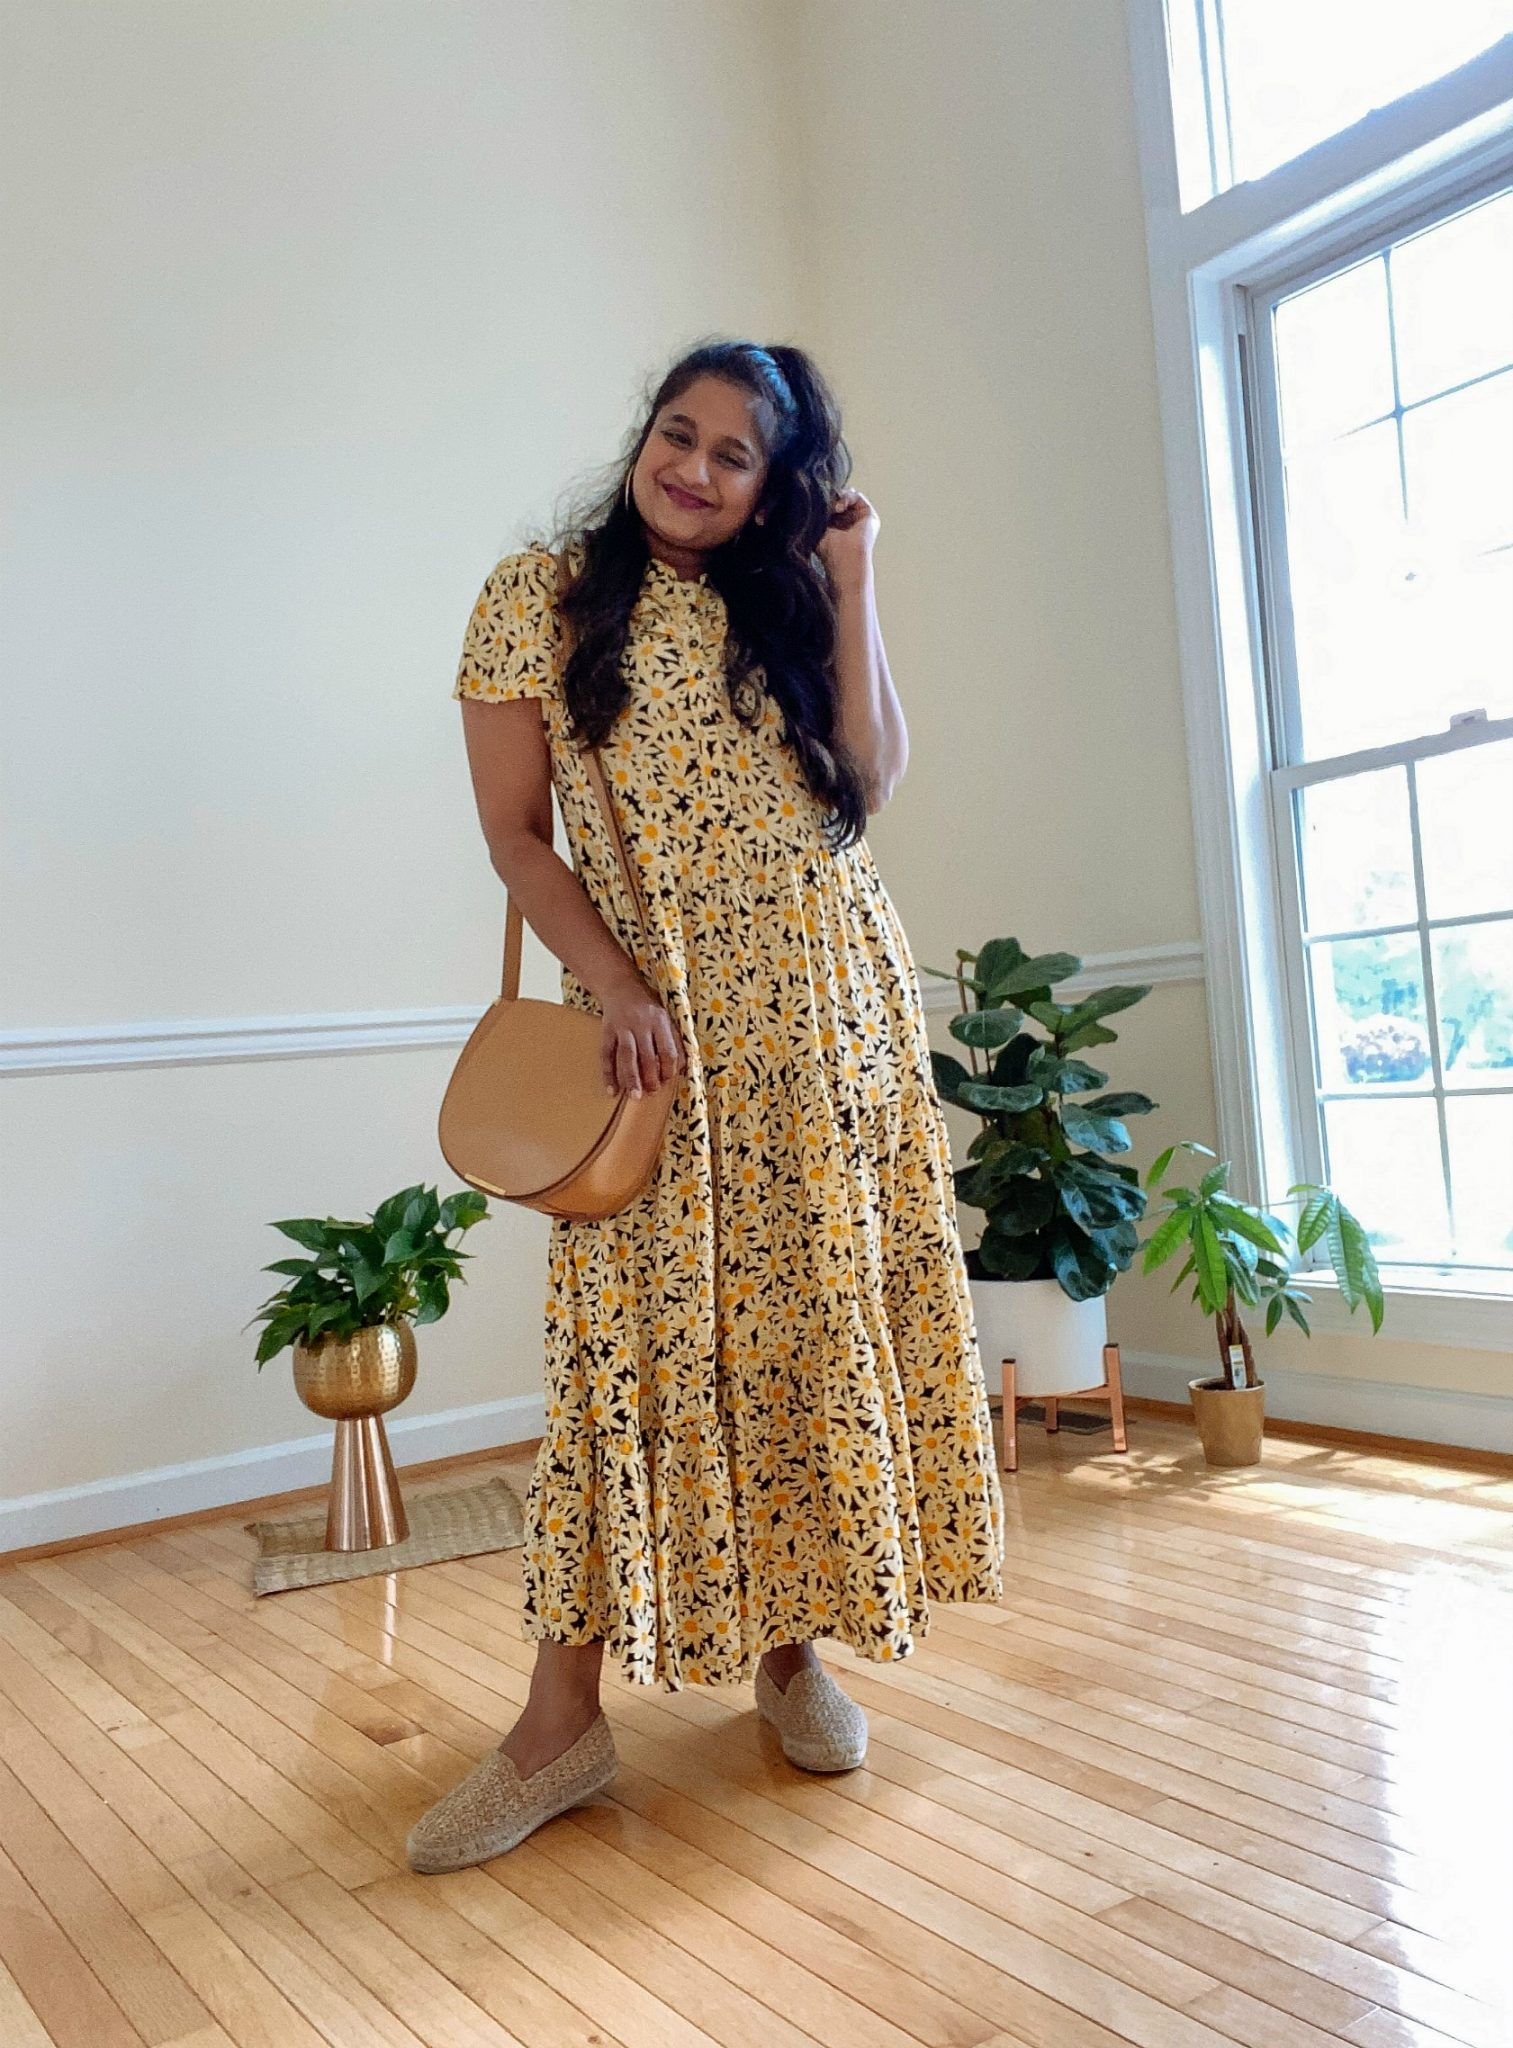 wearing Topshop Daisy Frandad Shirtdress, Manebi Yucatan espadrilles, Cuyana saddle bag | Casual Outfits by popular Maryland lifestyle blog, Dreaming Loud: image of a woman wearing a Topshop Daisy Frandad Shirtdress, Manebi Yucatan espadrilles, and holding a Cuyana saddle bag.